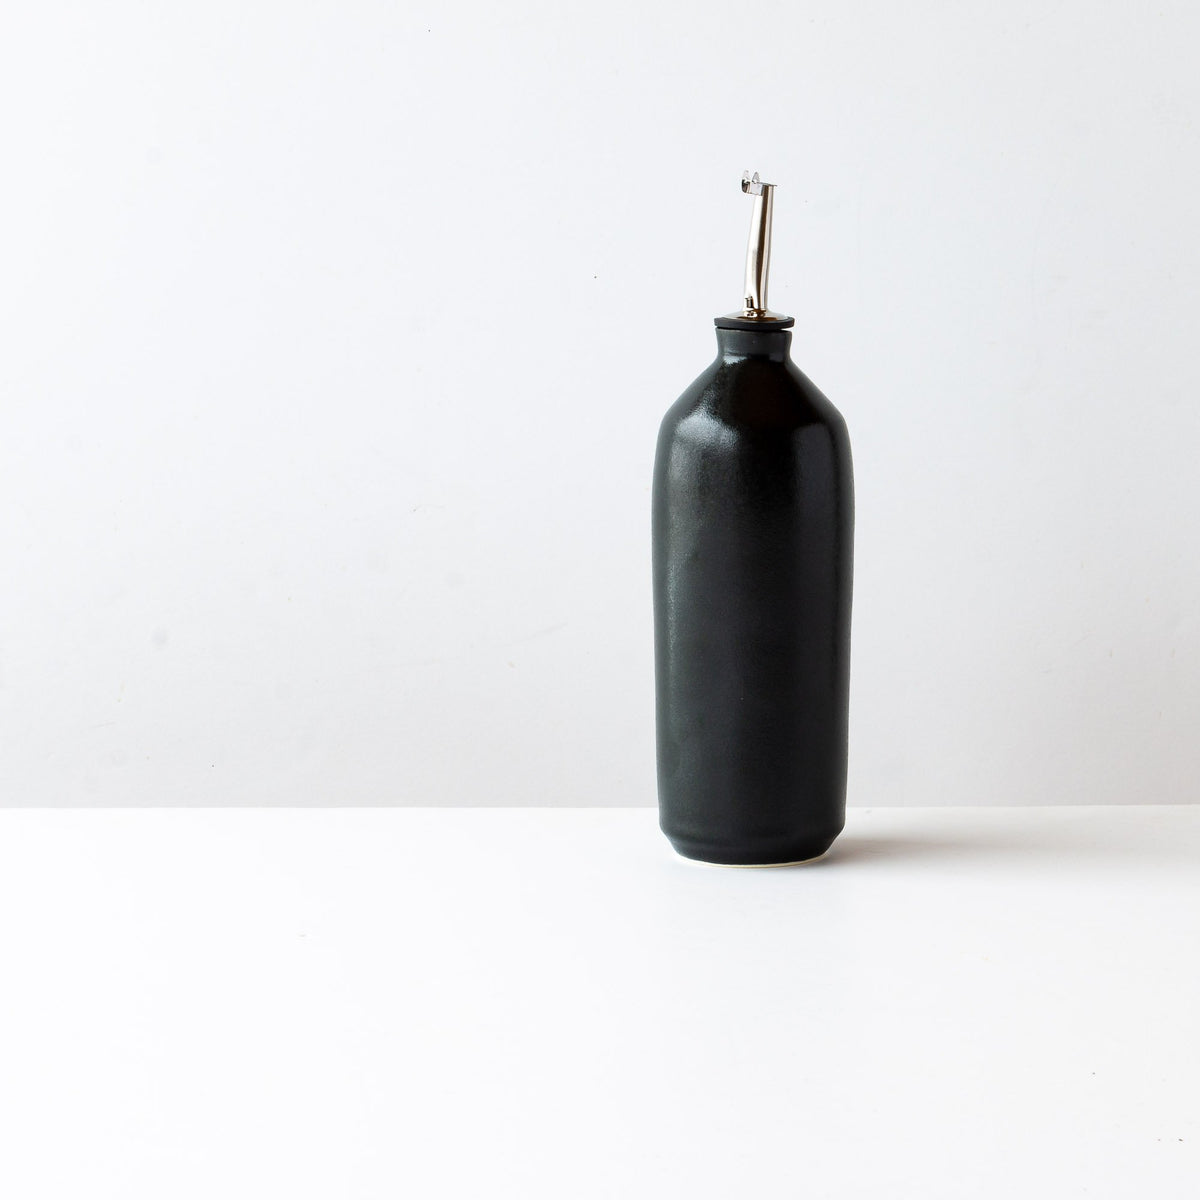 Handmade Black Glazed Porcelain Oil Bottle - Sold by Chic & Basta